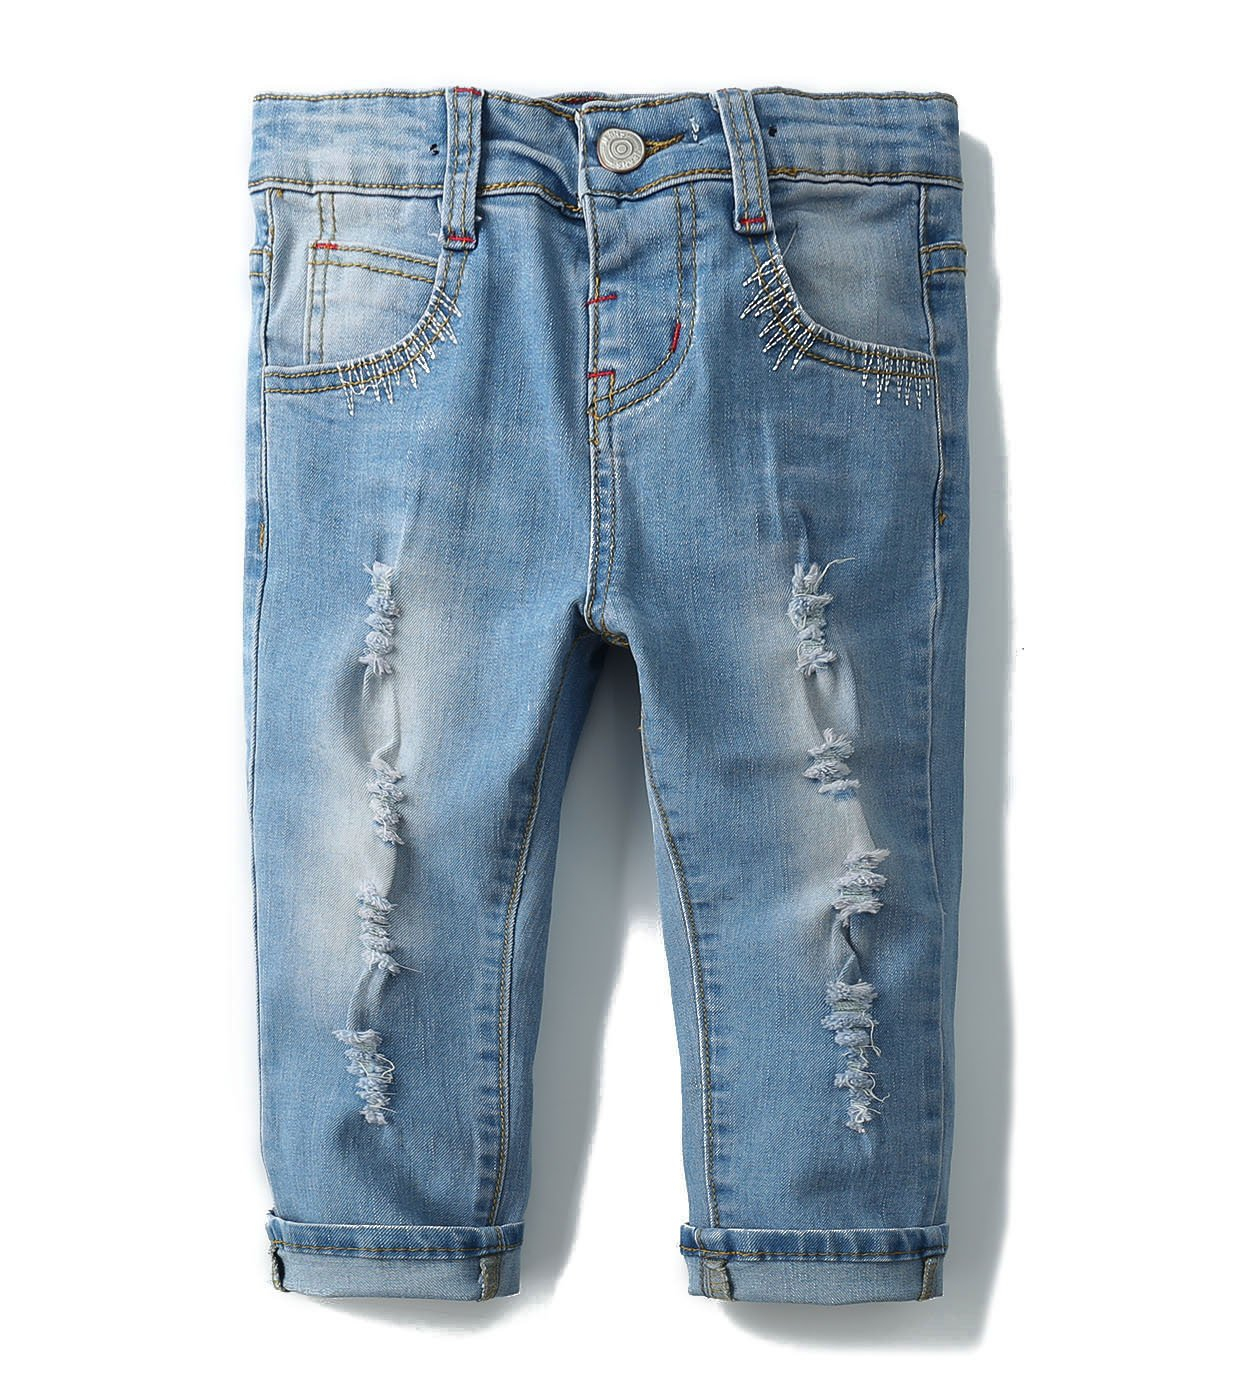 Kidscool Girls Ripped Holes Stretchy Stone Washed Soft Jeans,Blue,4